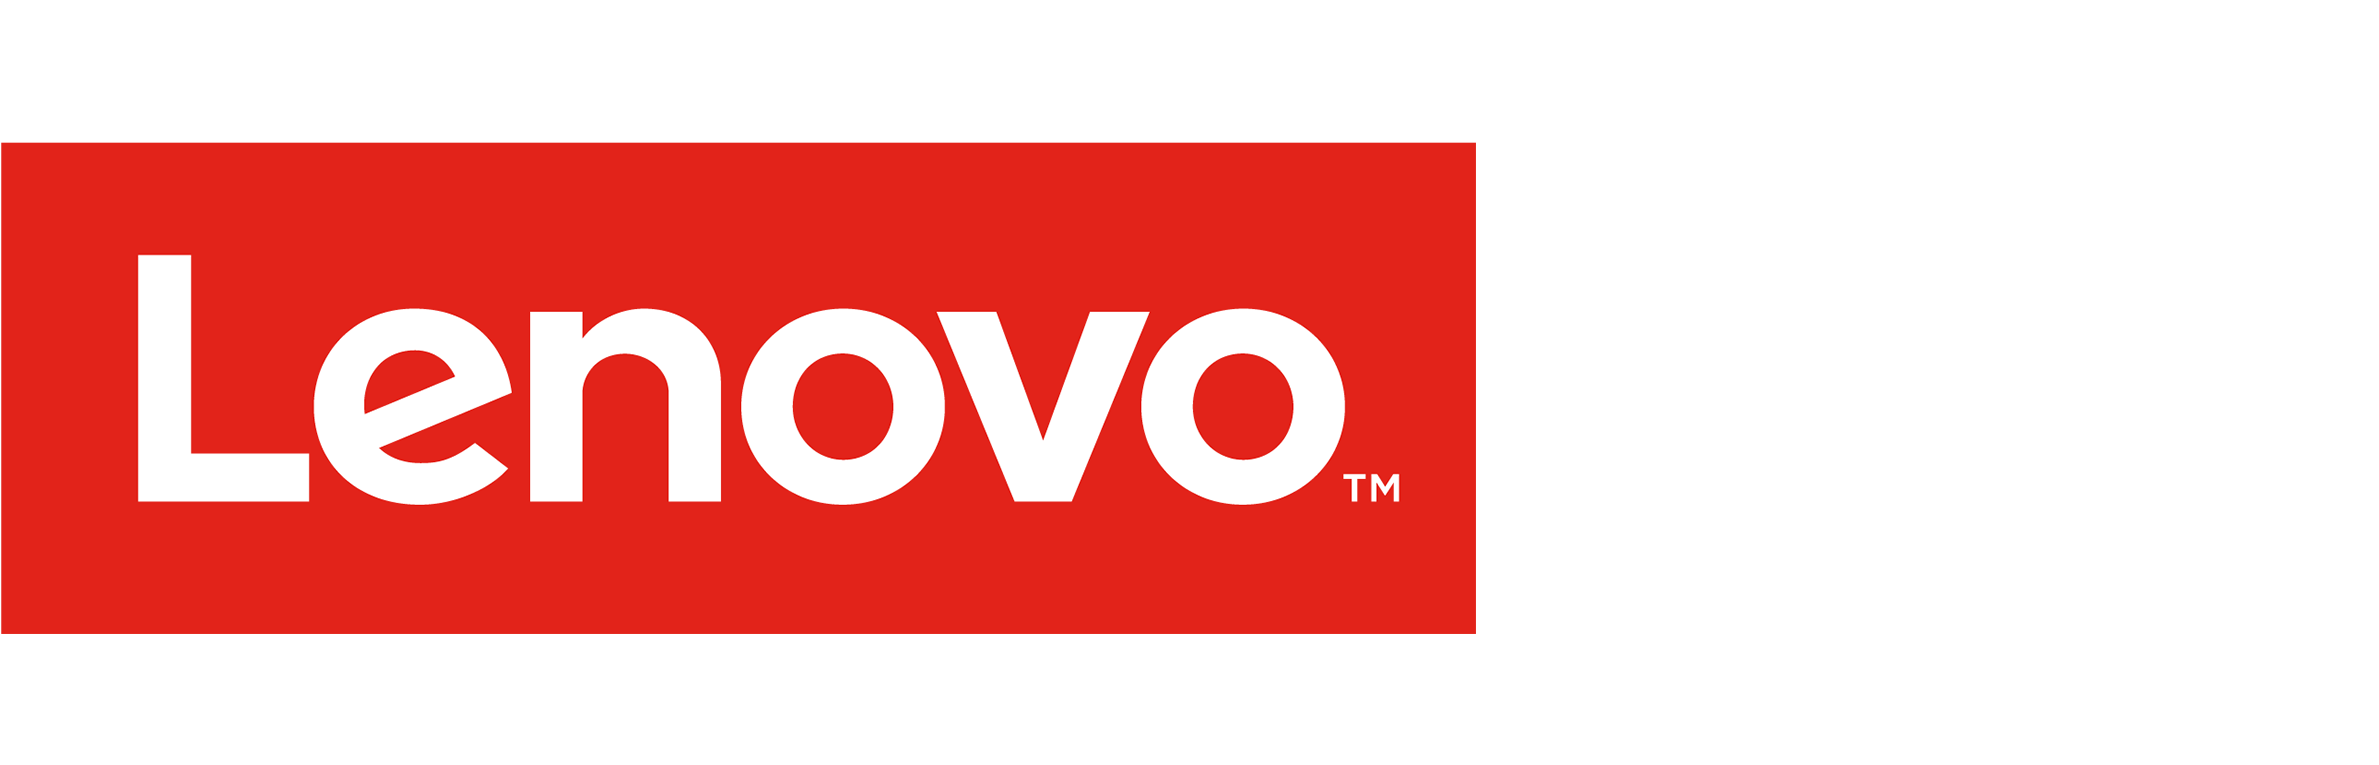 Lenovo HK Services Limited